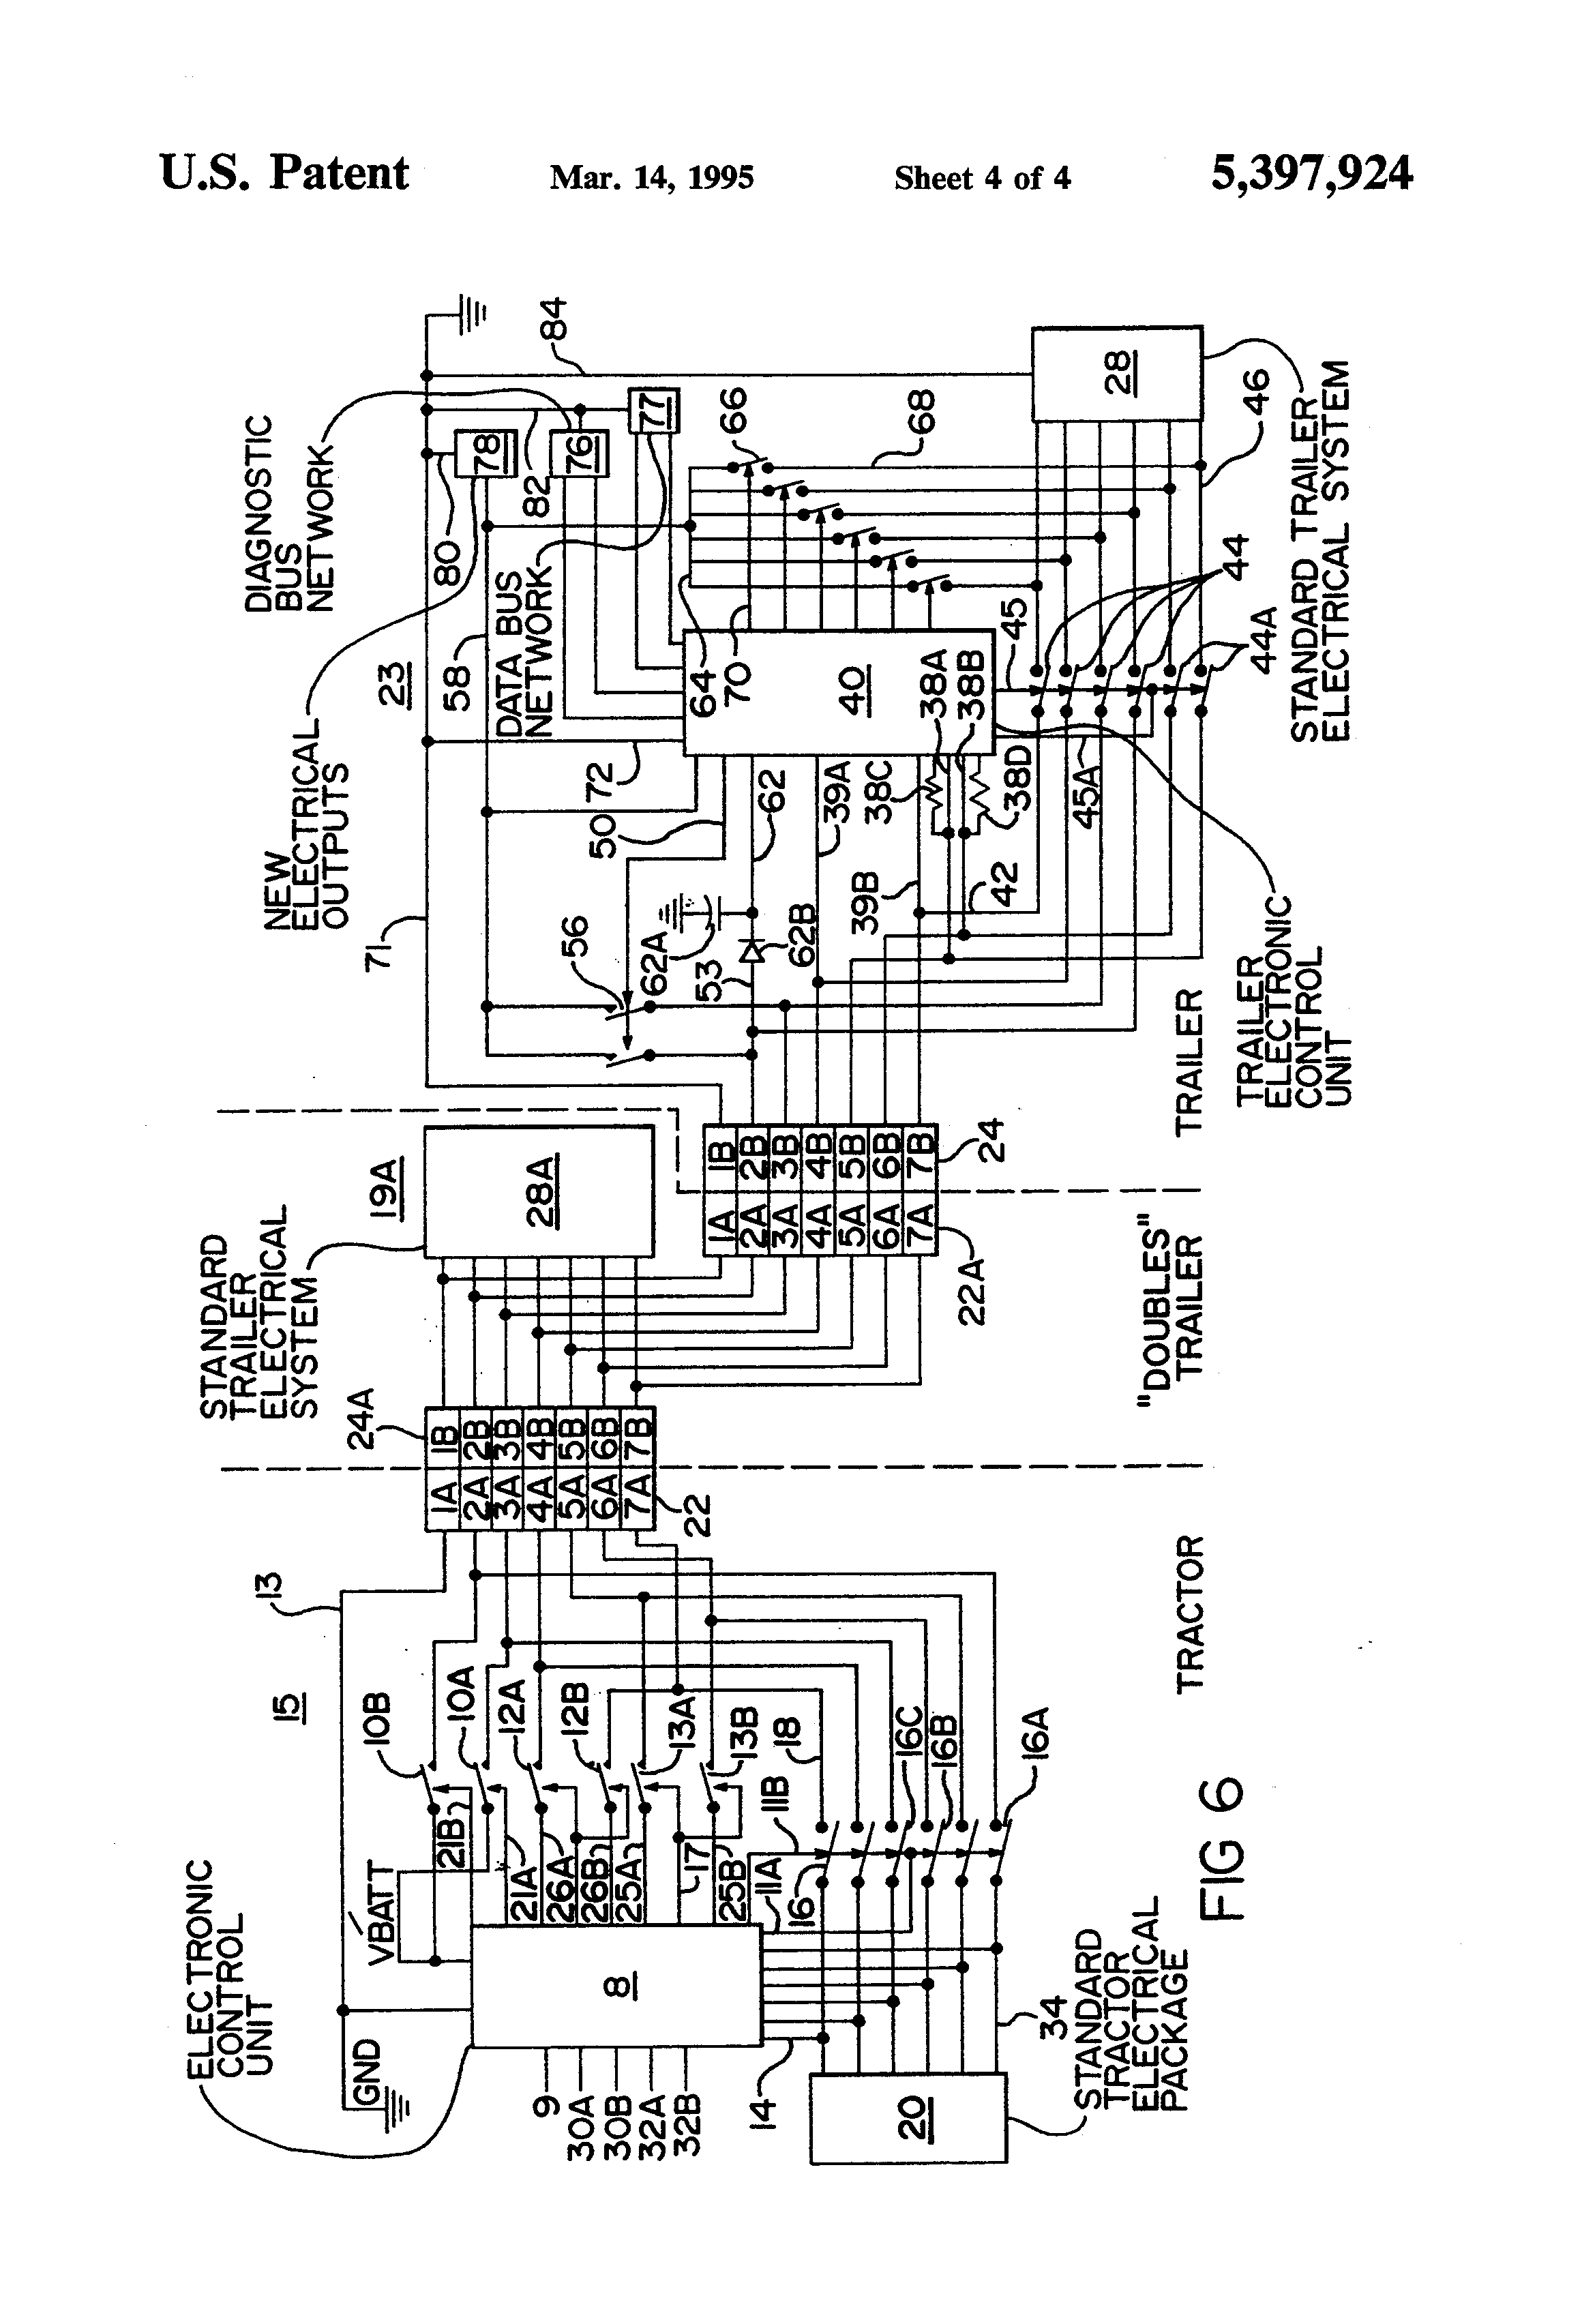 isolation module wiring diagram wabco ebs wiring diagram wabco image wiring diagram patent us5397924 truck tractor and trailer electrical on